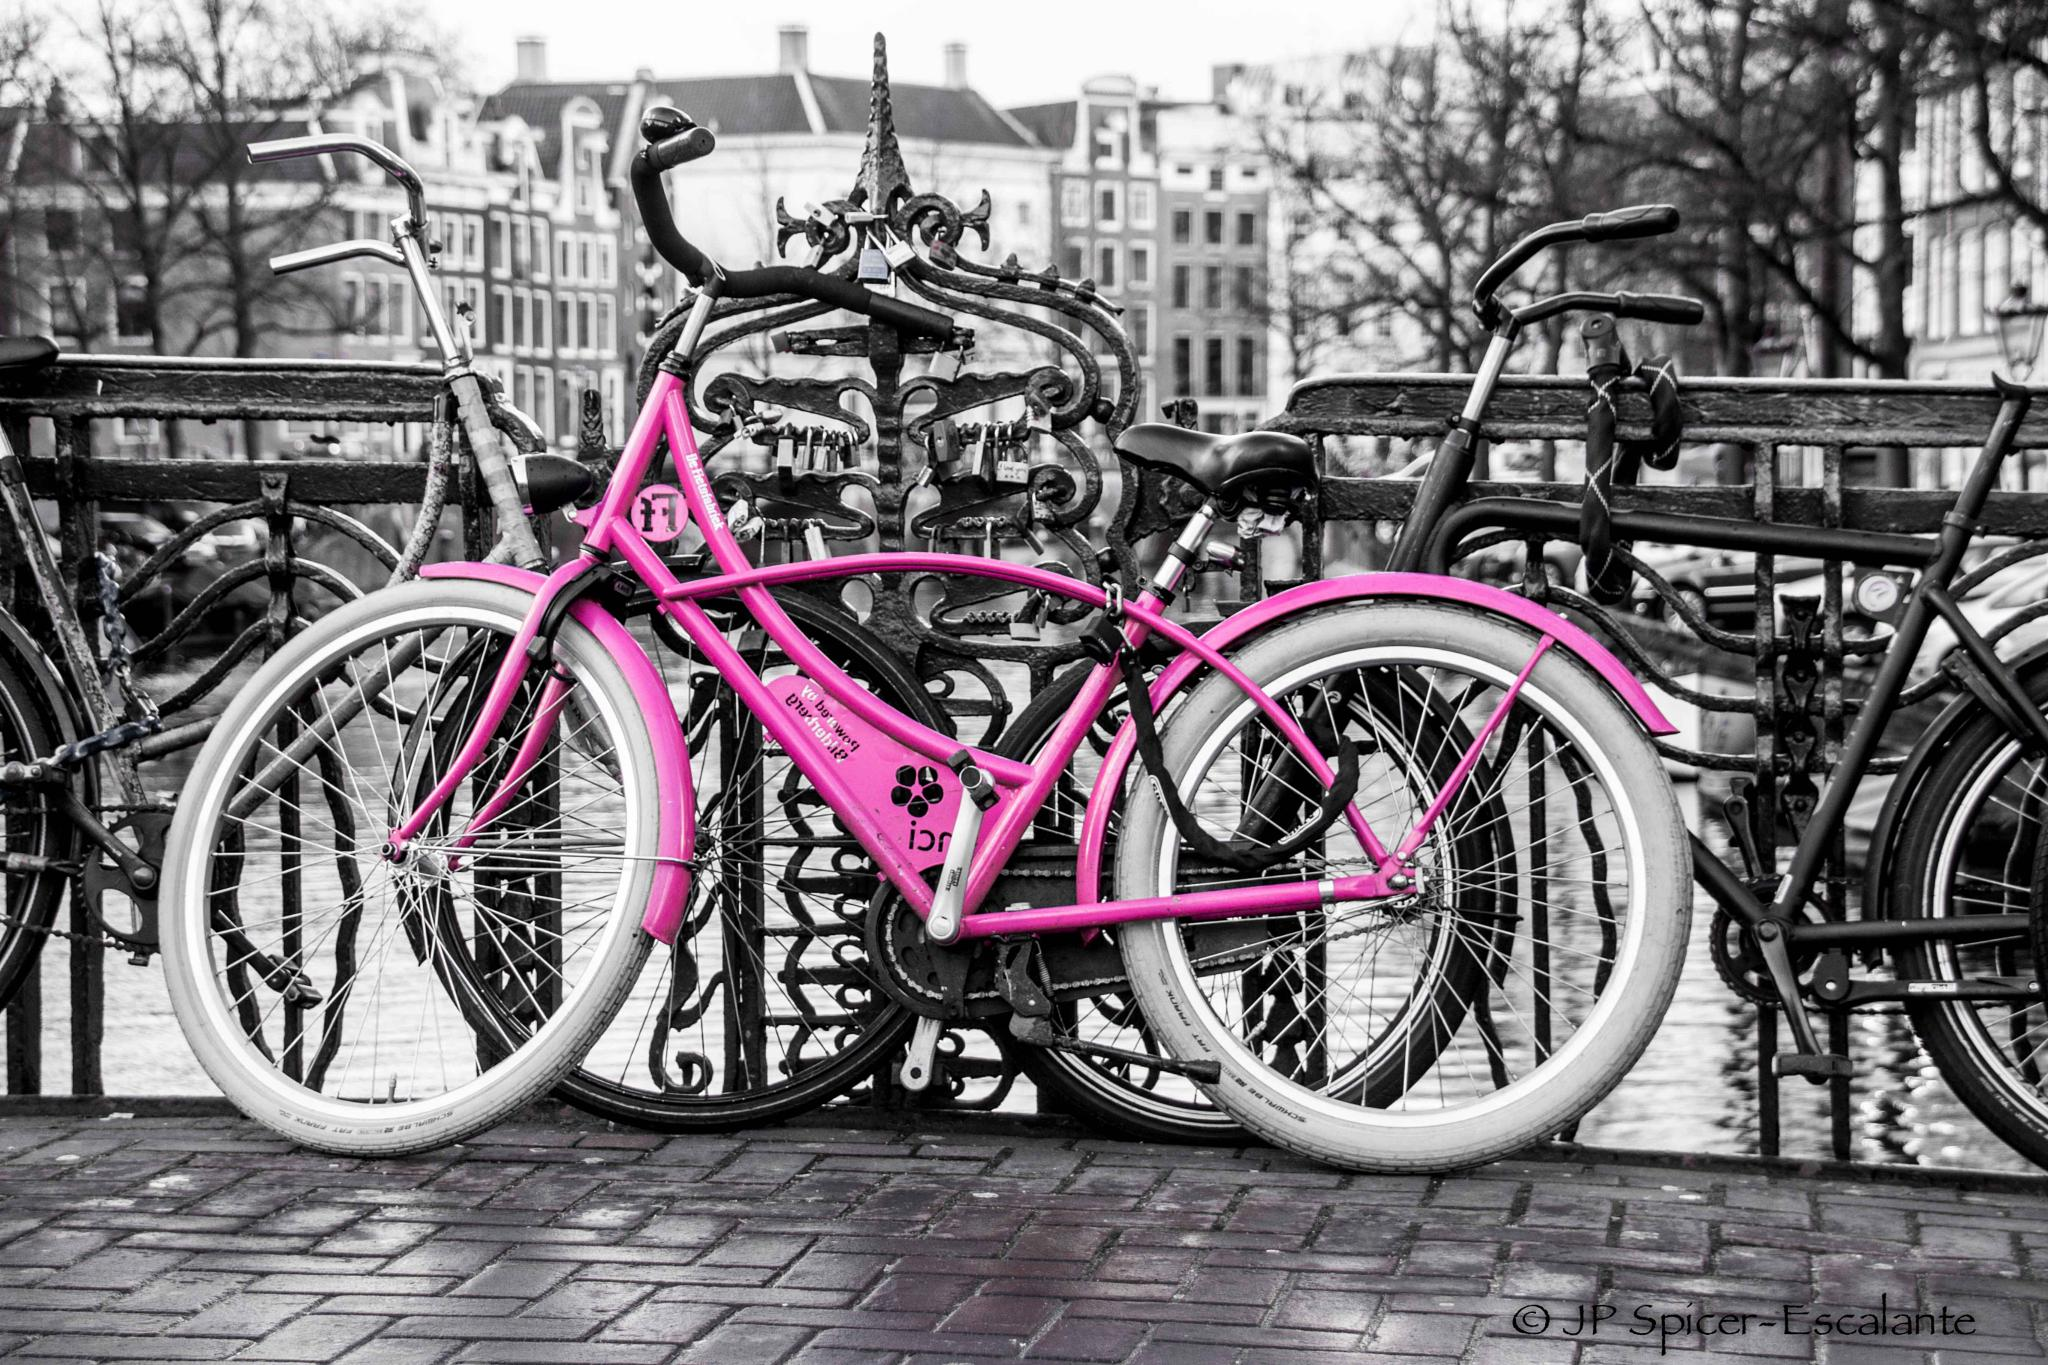 The Pink Bike by jp.spicer